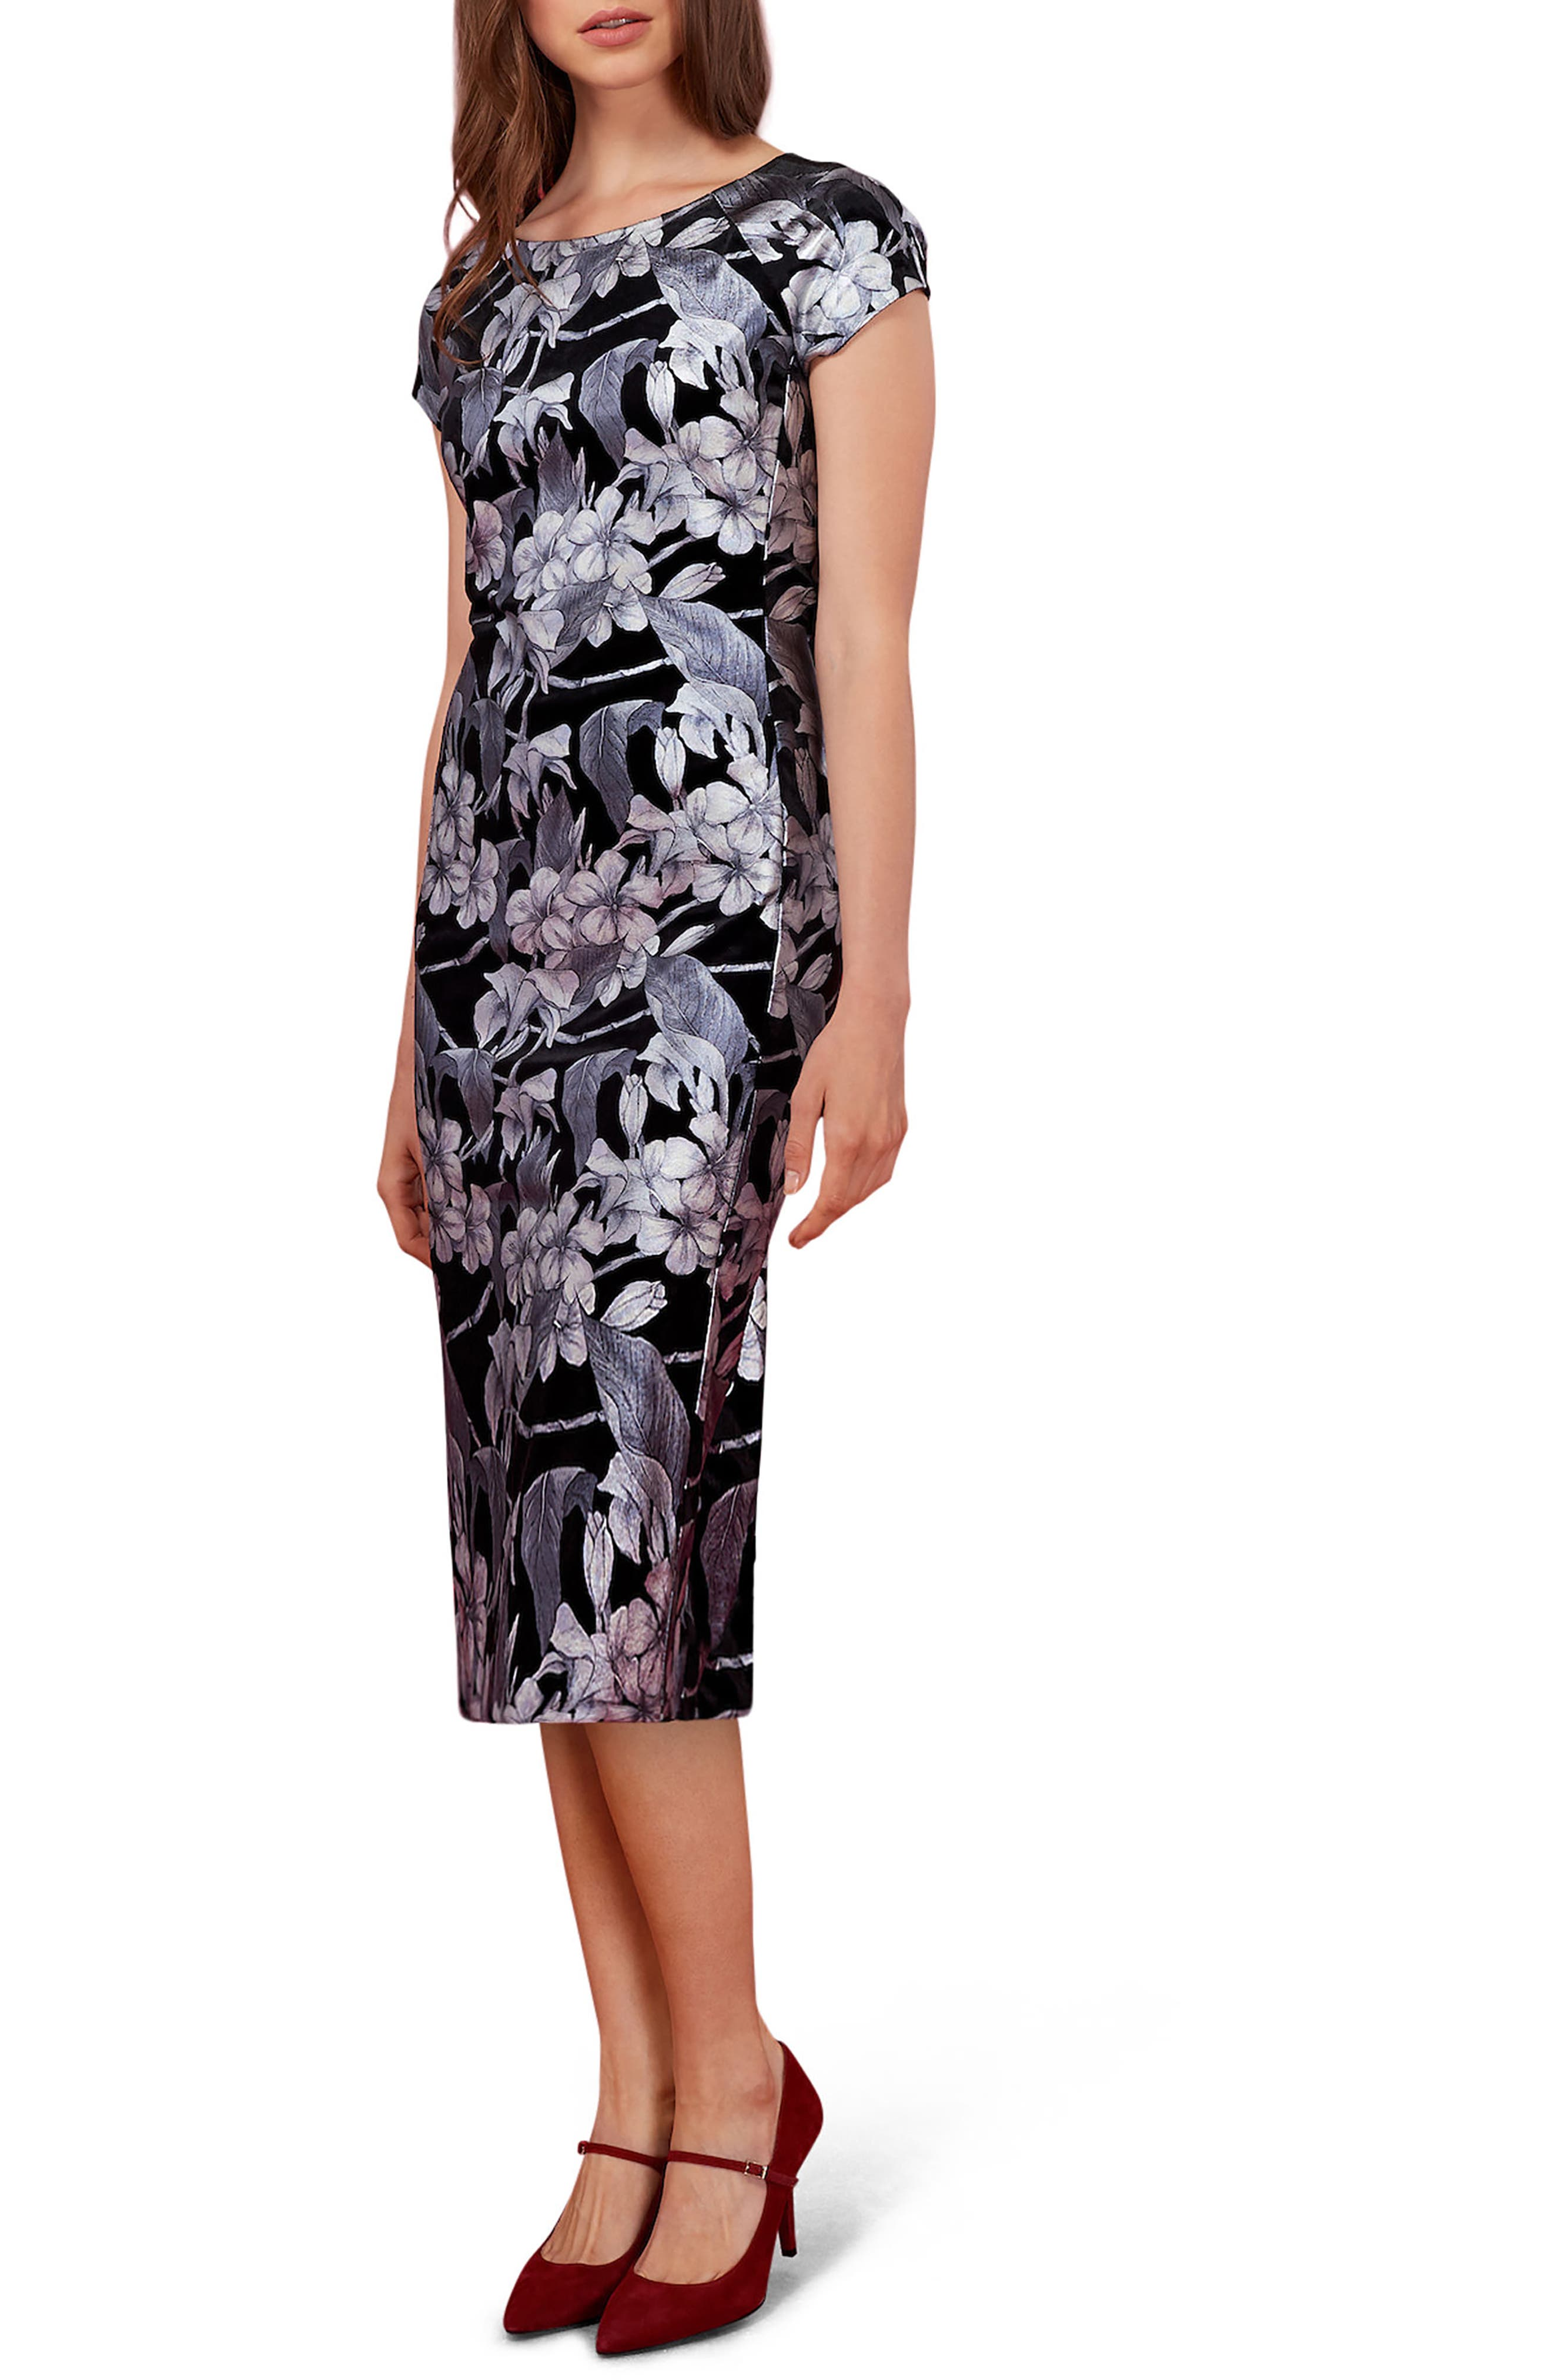 Floral Print Velvet Midi Dress,                         Main,                         color, Black/ Silver